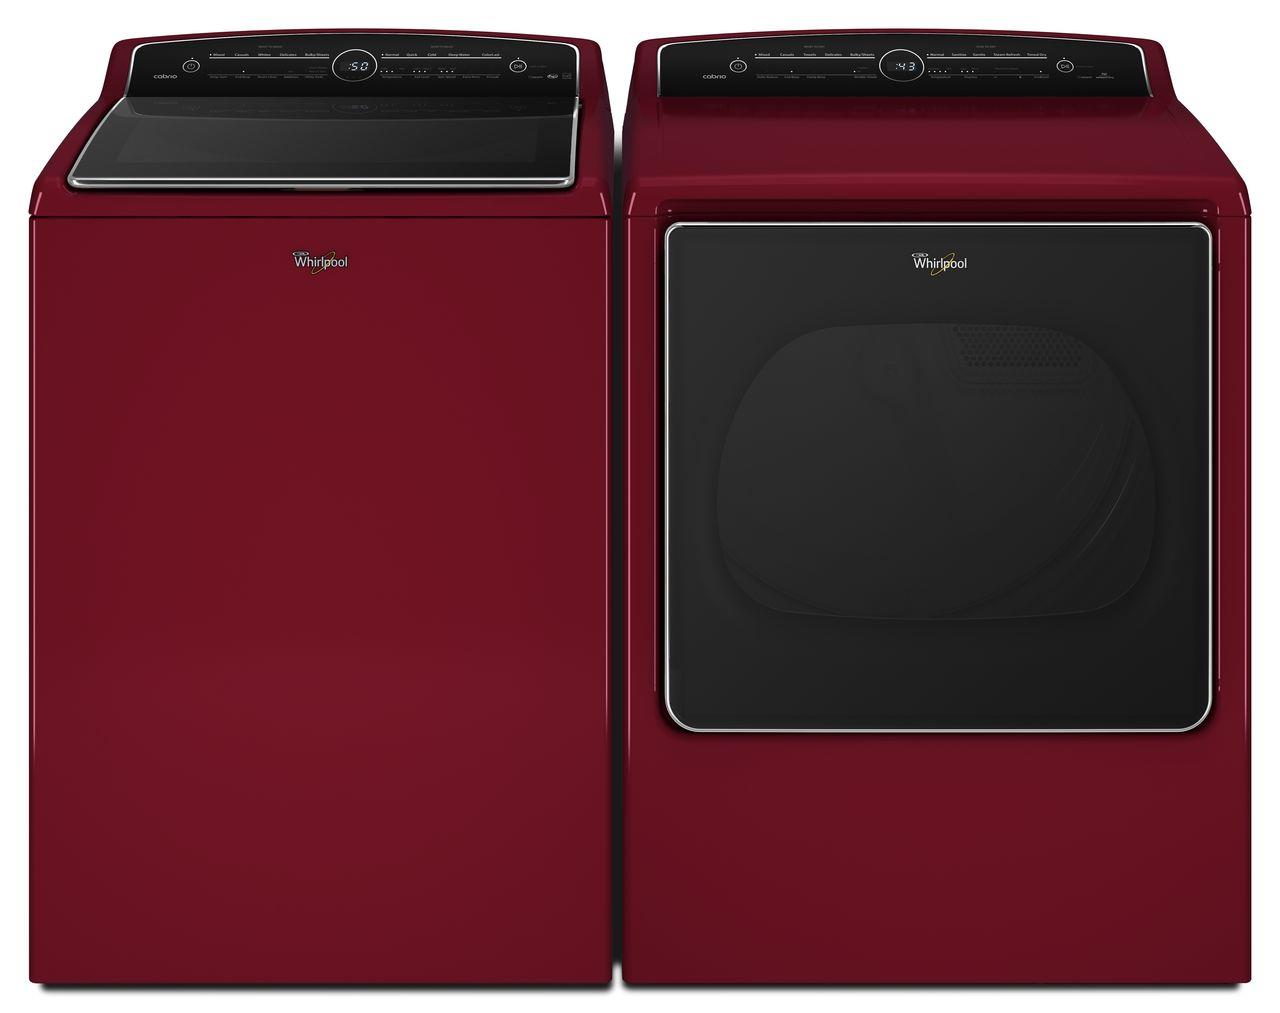 Whirlpool Washer and Dryer Sets - Whirlpool Washer and Dryer Combo - Item Number: WTW8500DR+WED8500DR